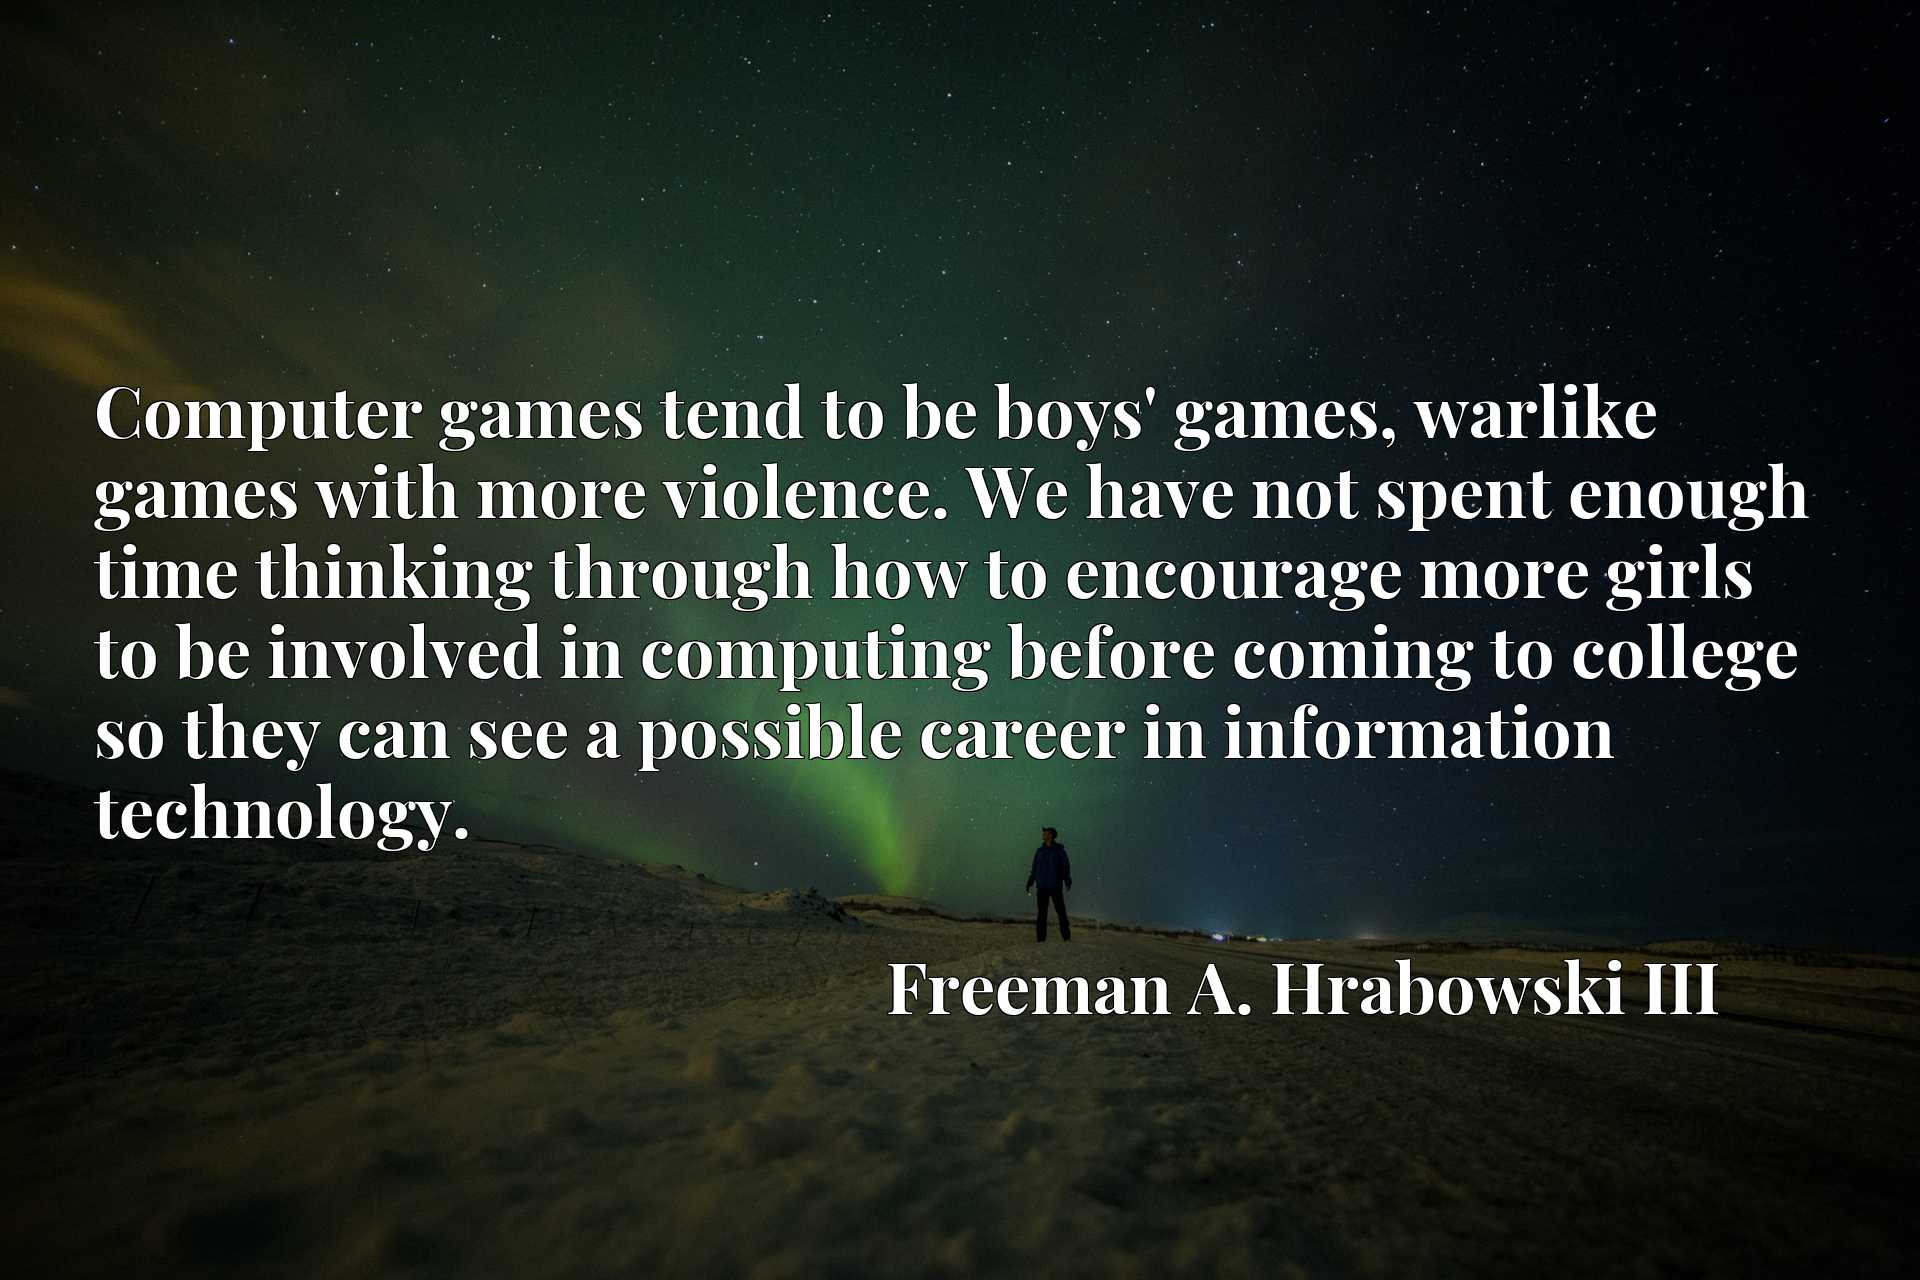 Computer games tend to be boys' games, warlike games with more violence. We have not spent enough time thinking through how to encourage more girls to be involved in computing before coming to college so they can see a possible career in information technology.